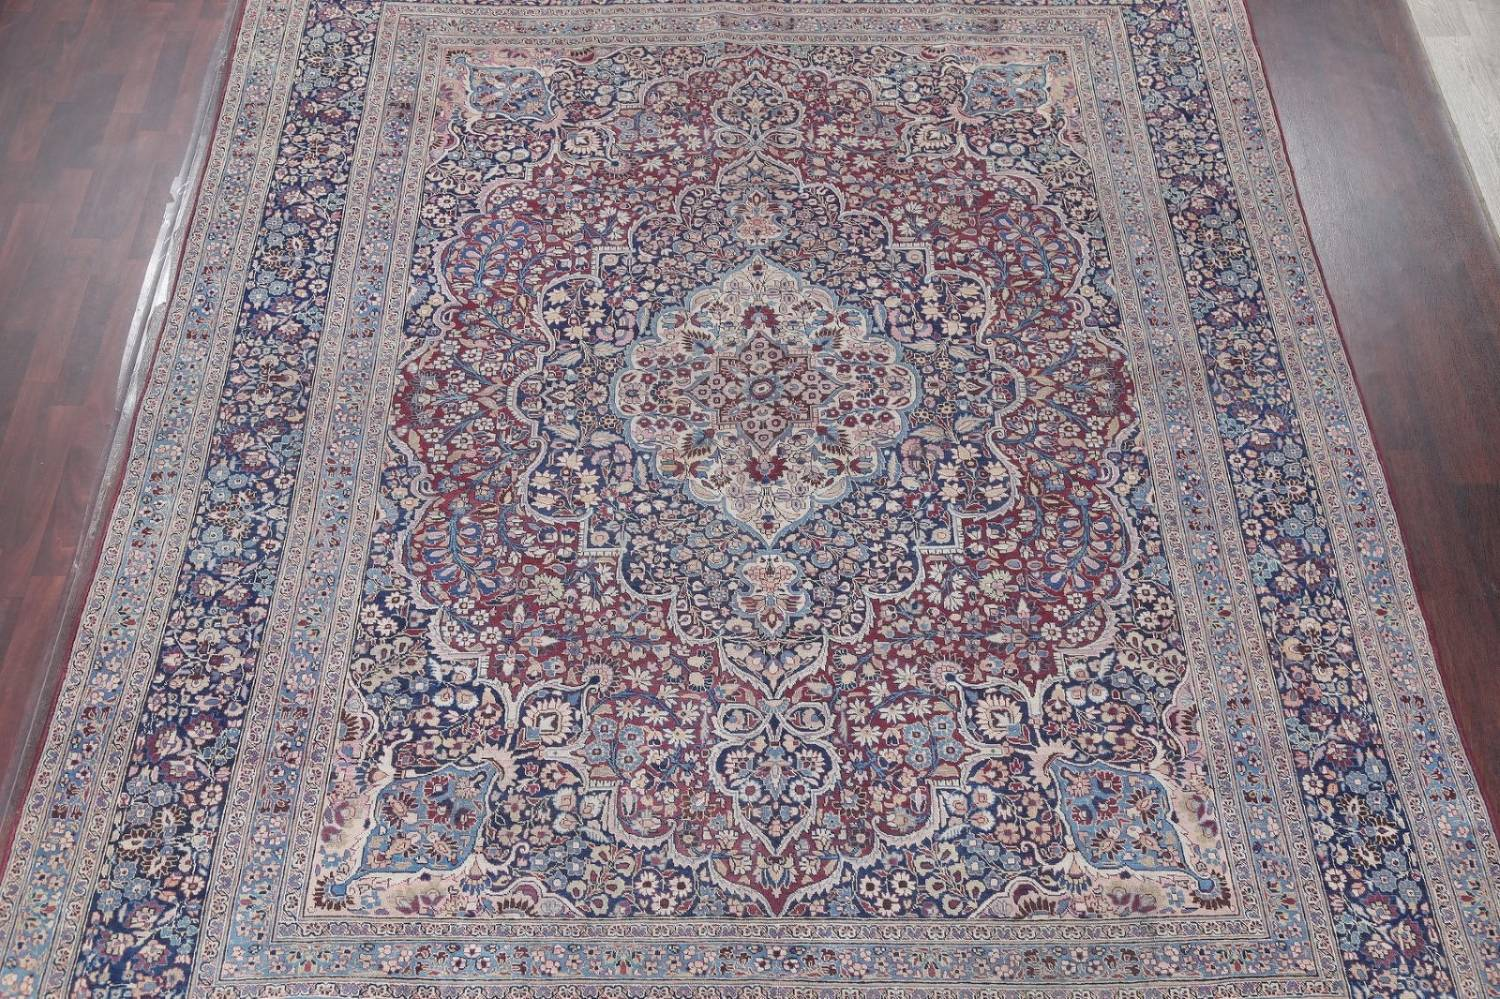 Pre-1900 Antique Floral Mashad Persian Hand-Knotted 10x13 Burgundy Area Rug image 3